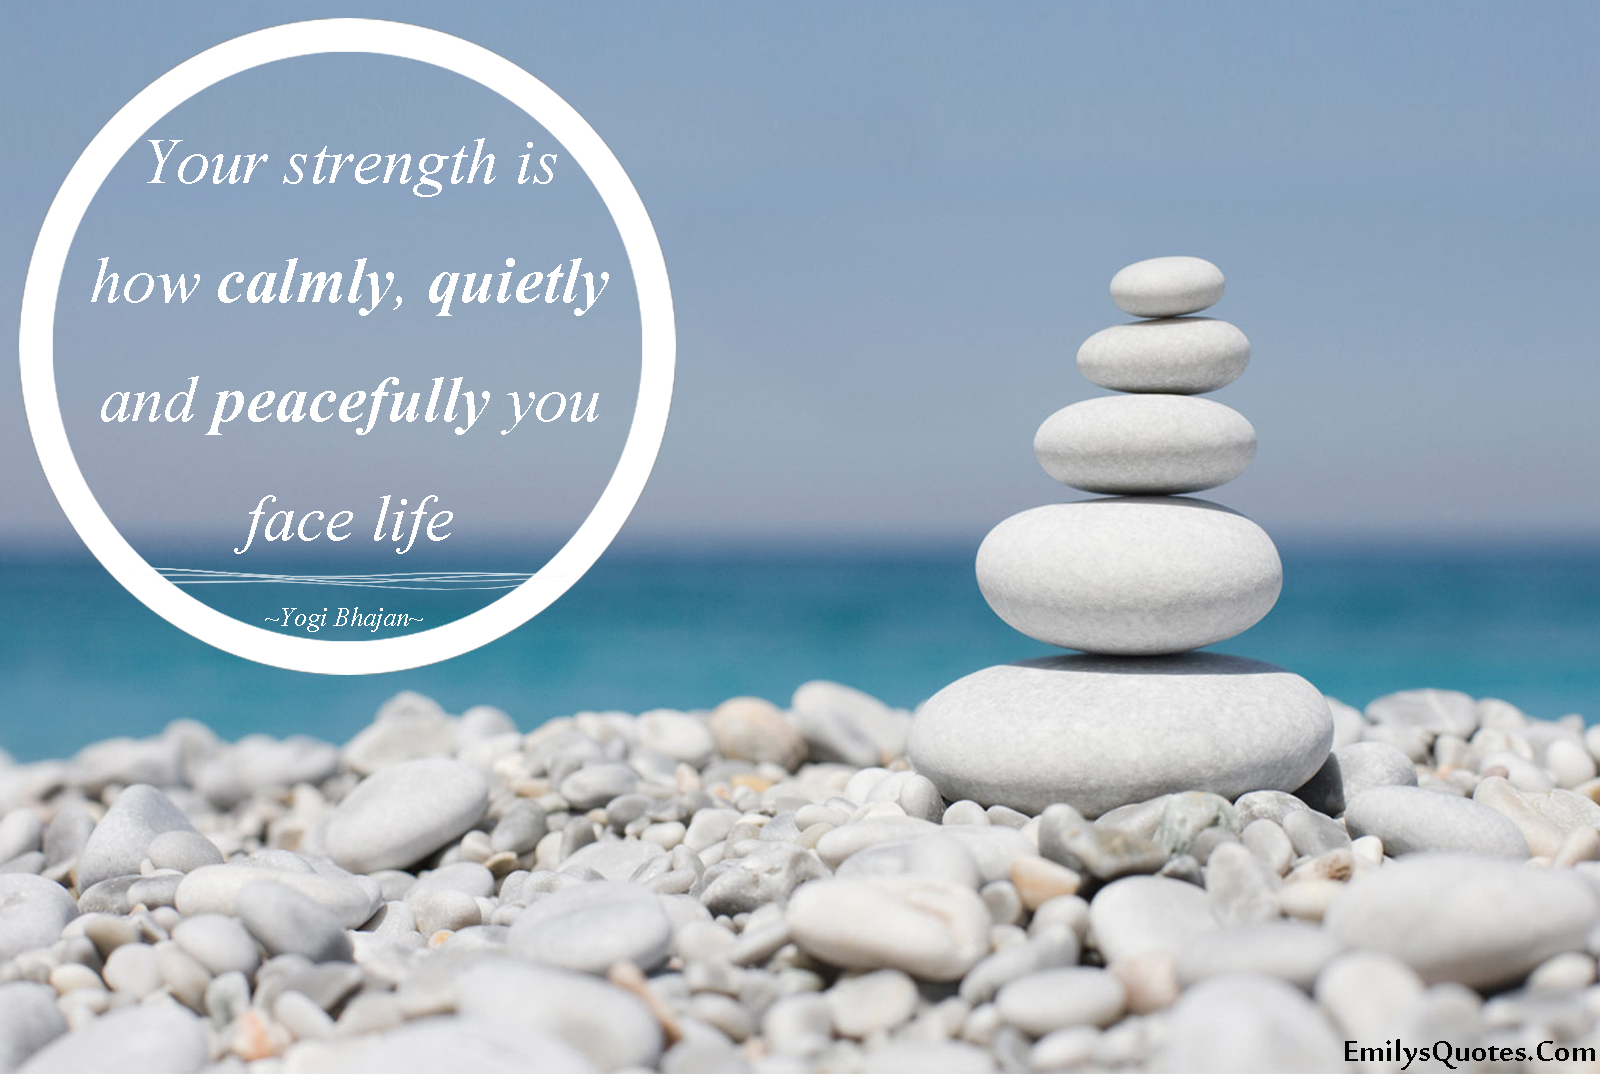 Your Strength Is How Calmly Quietly And Peacefully You Face Life